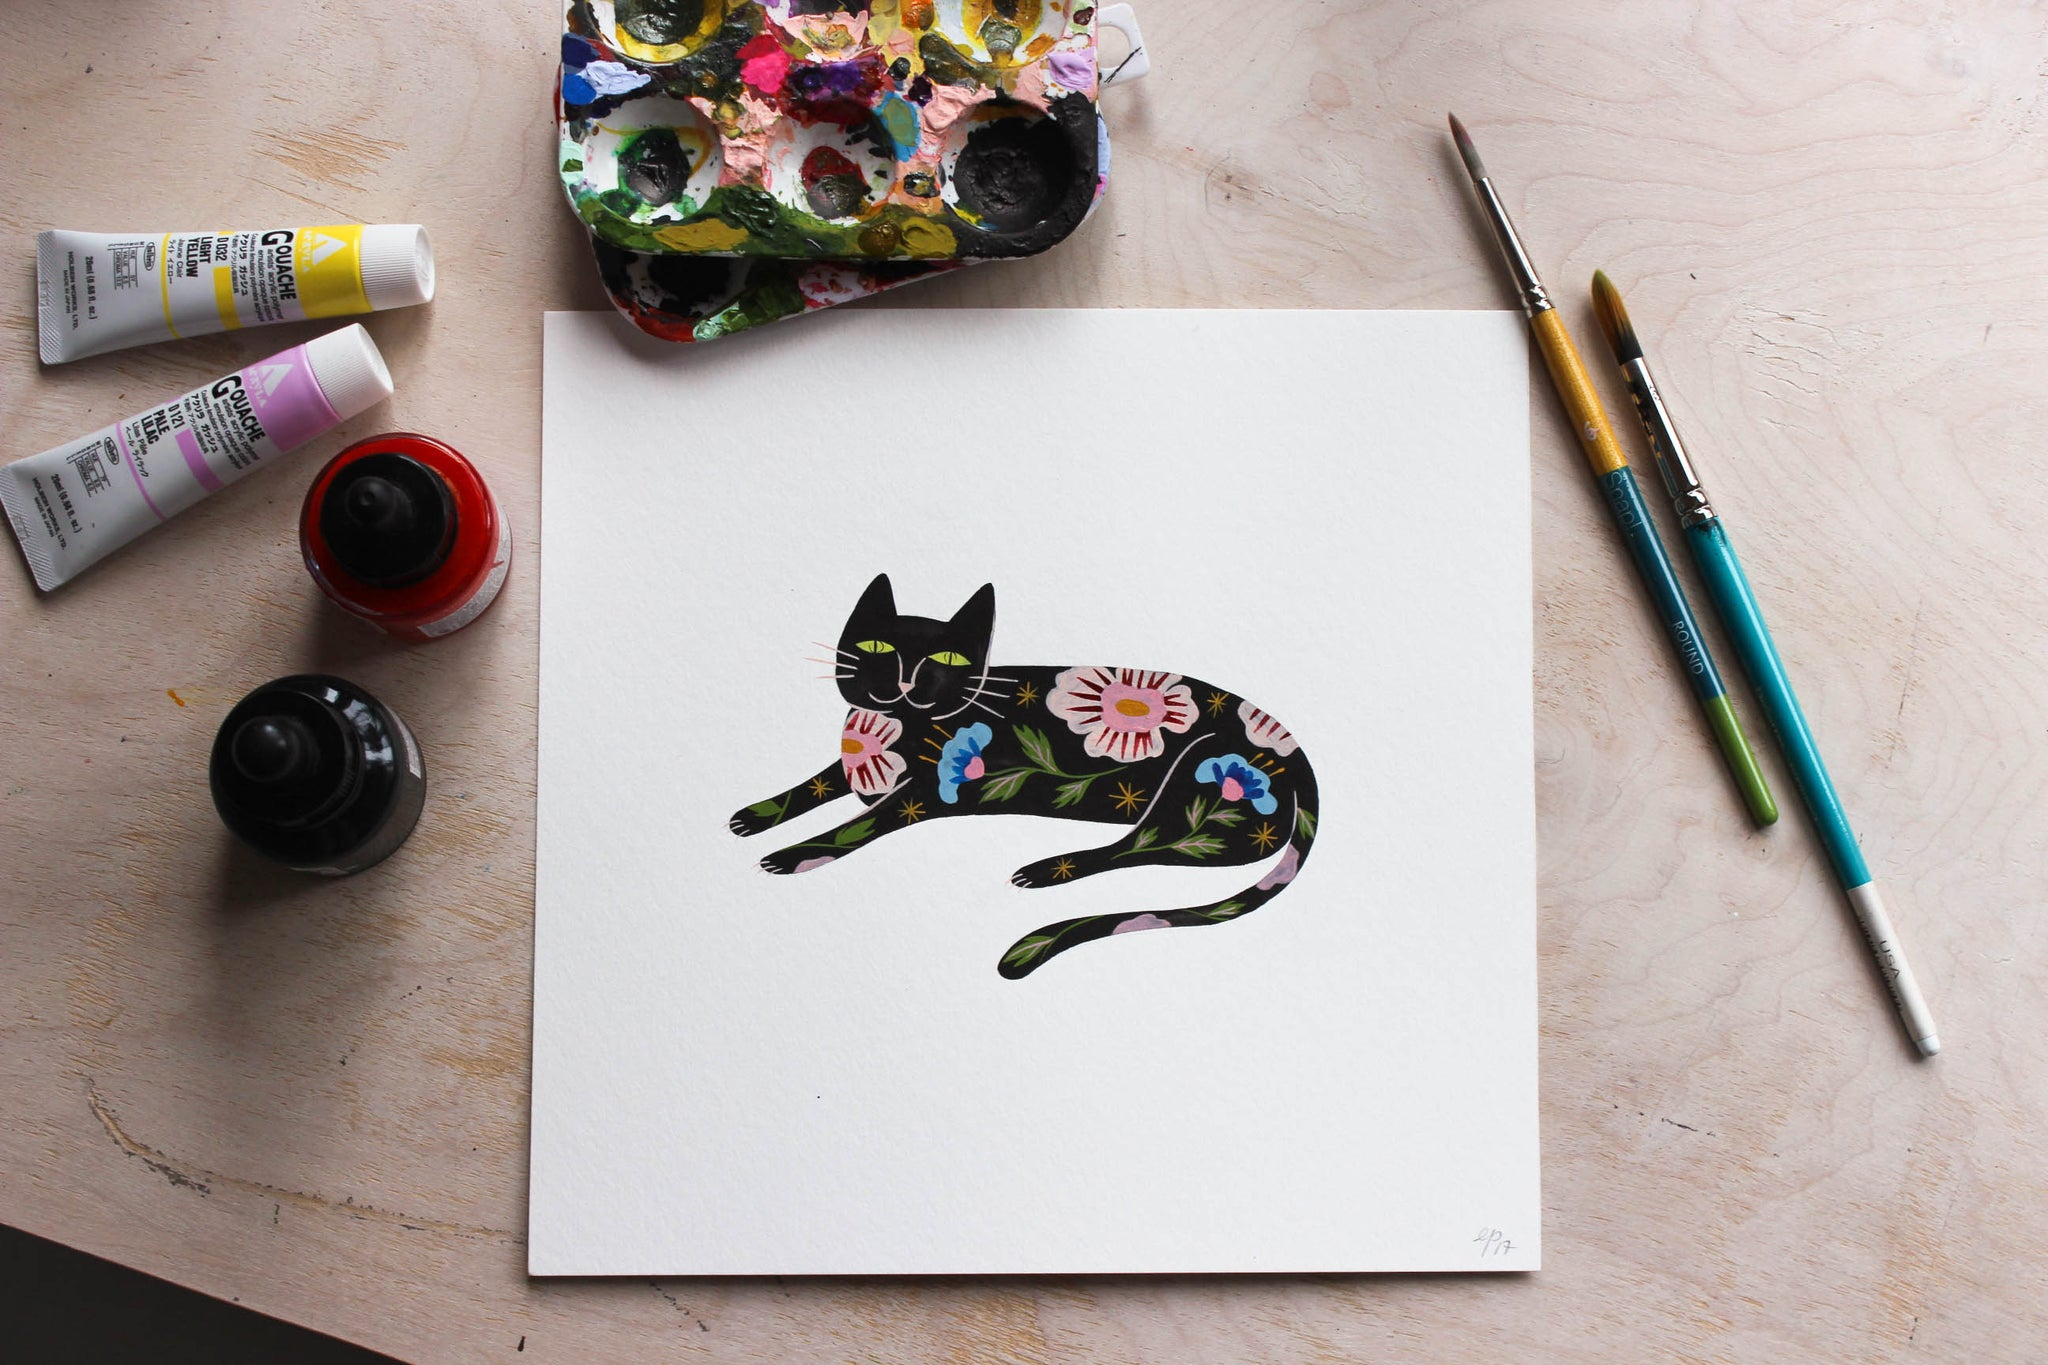 Flower Cat Tattly by Estee Preda